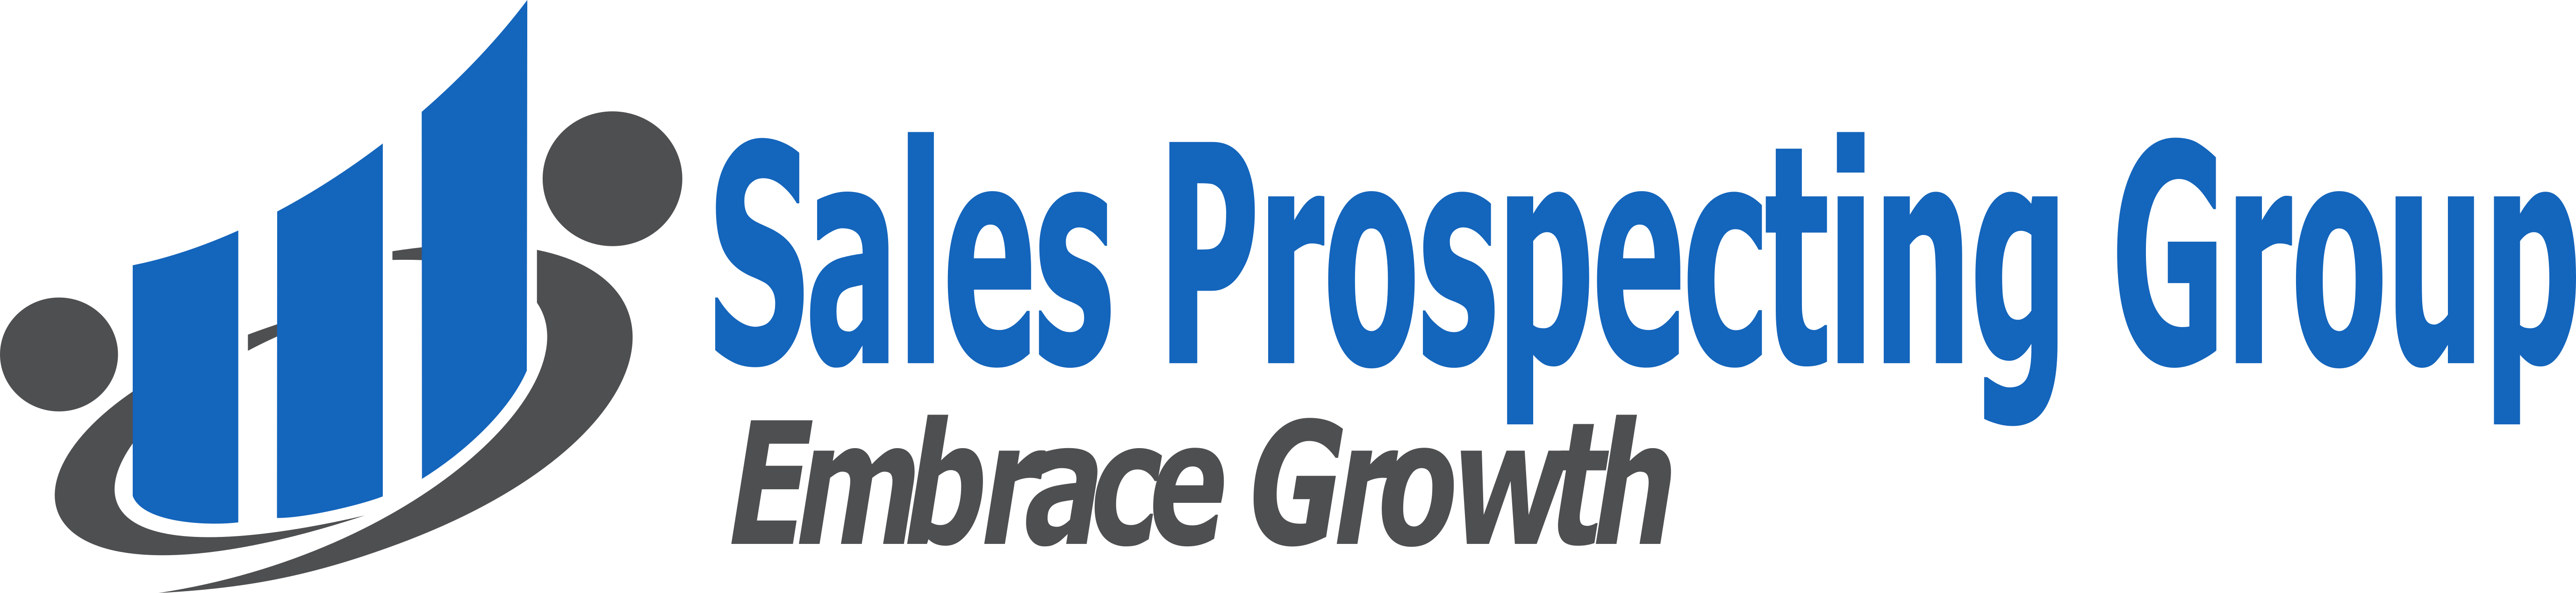 Sales Prospecting Group